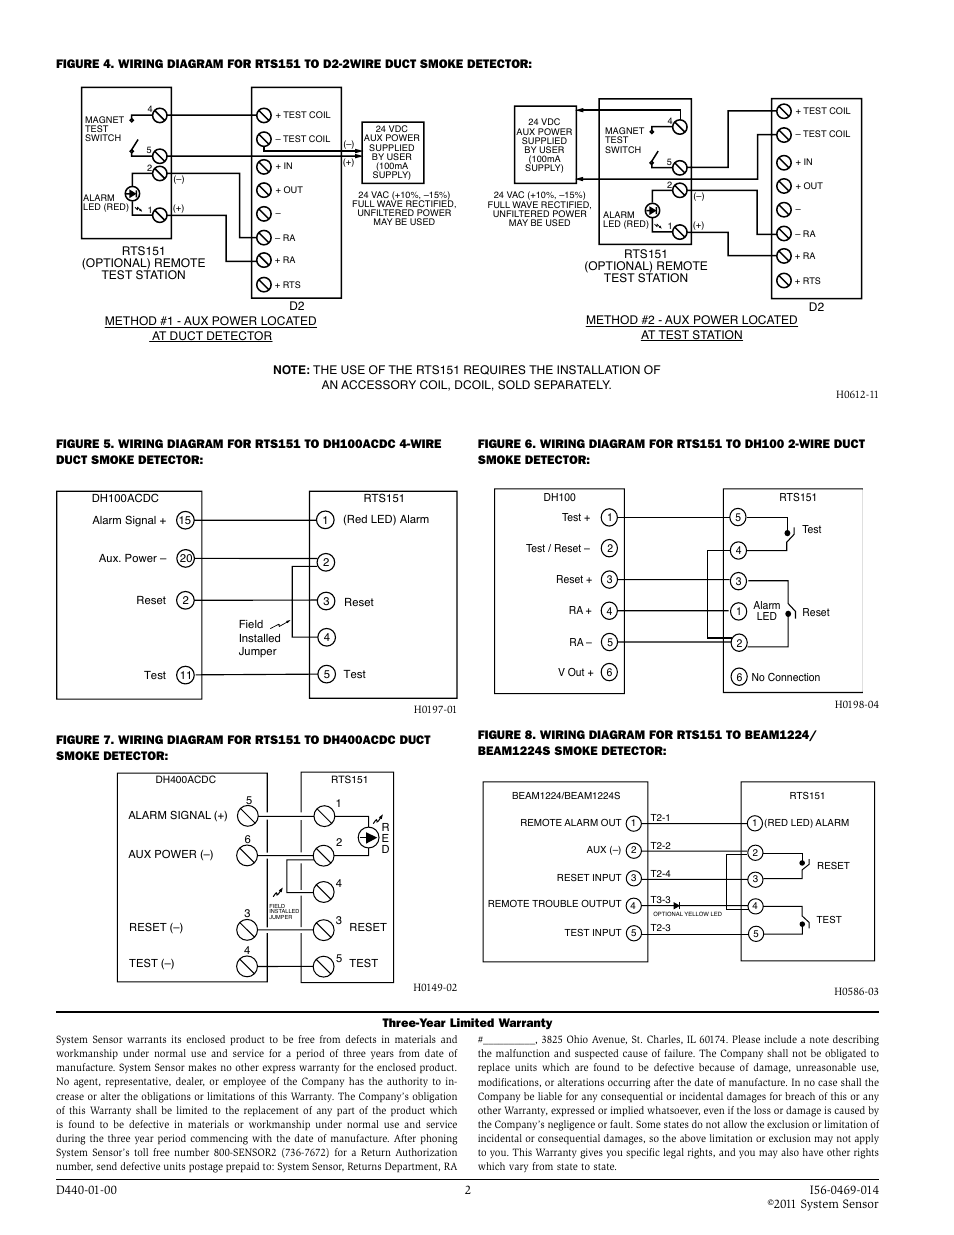 system sensor rts151 page2 system sensor rts151 user manual page 2 2 system sensor d2 wiring diagram at bayanpartner.co